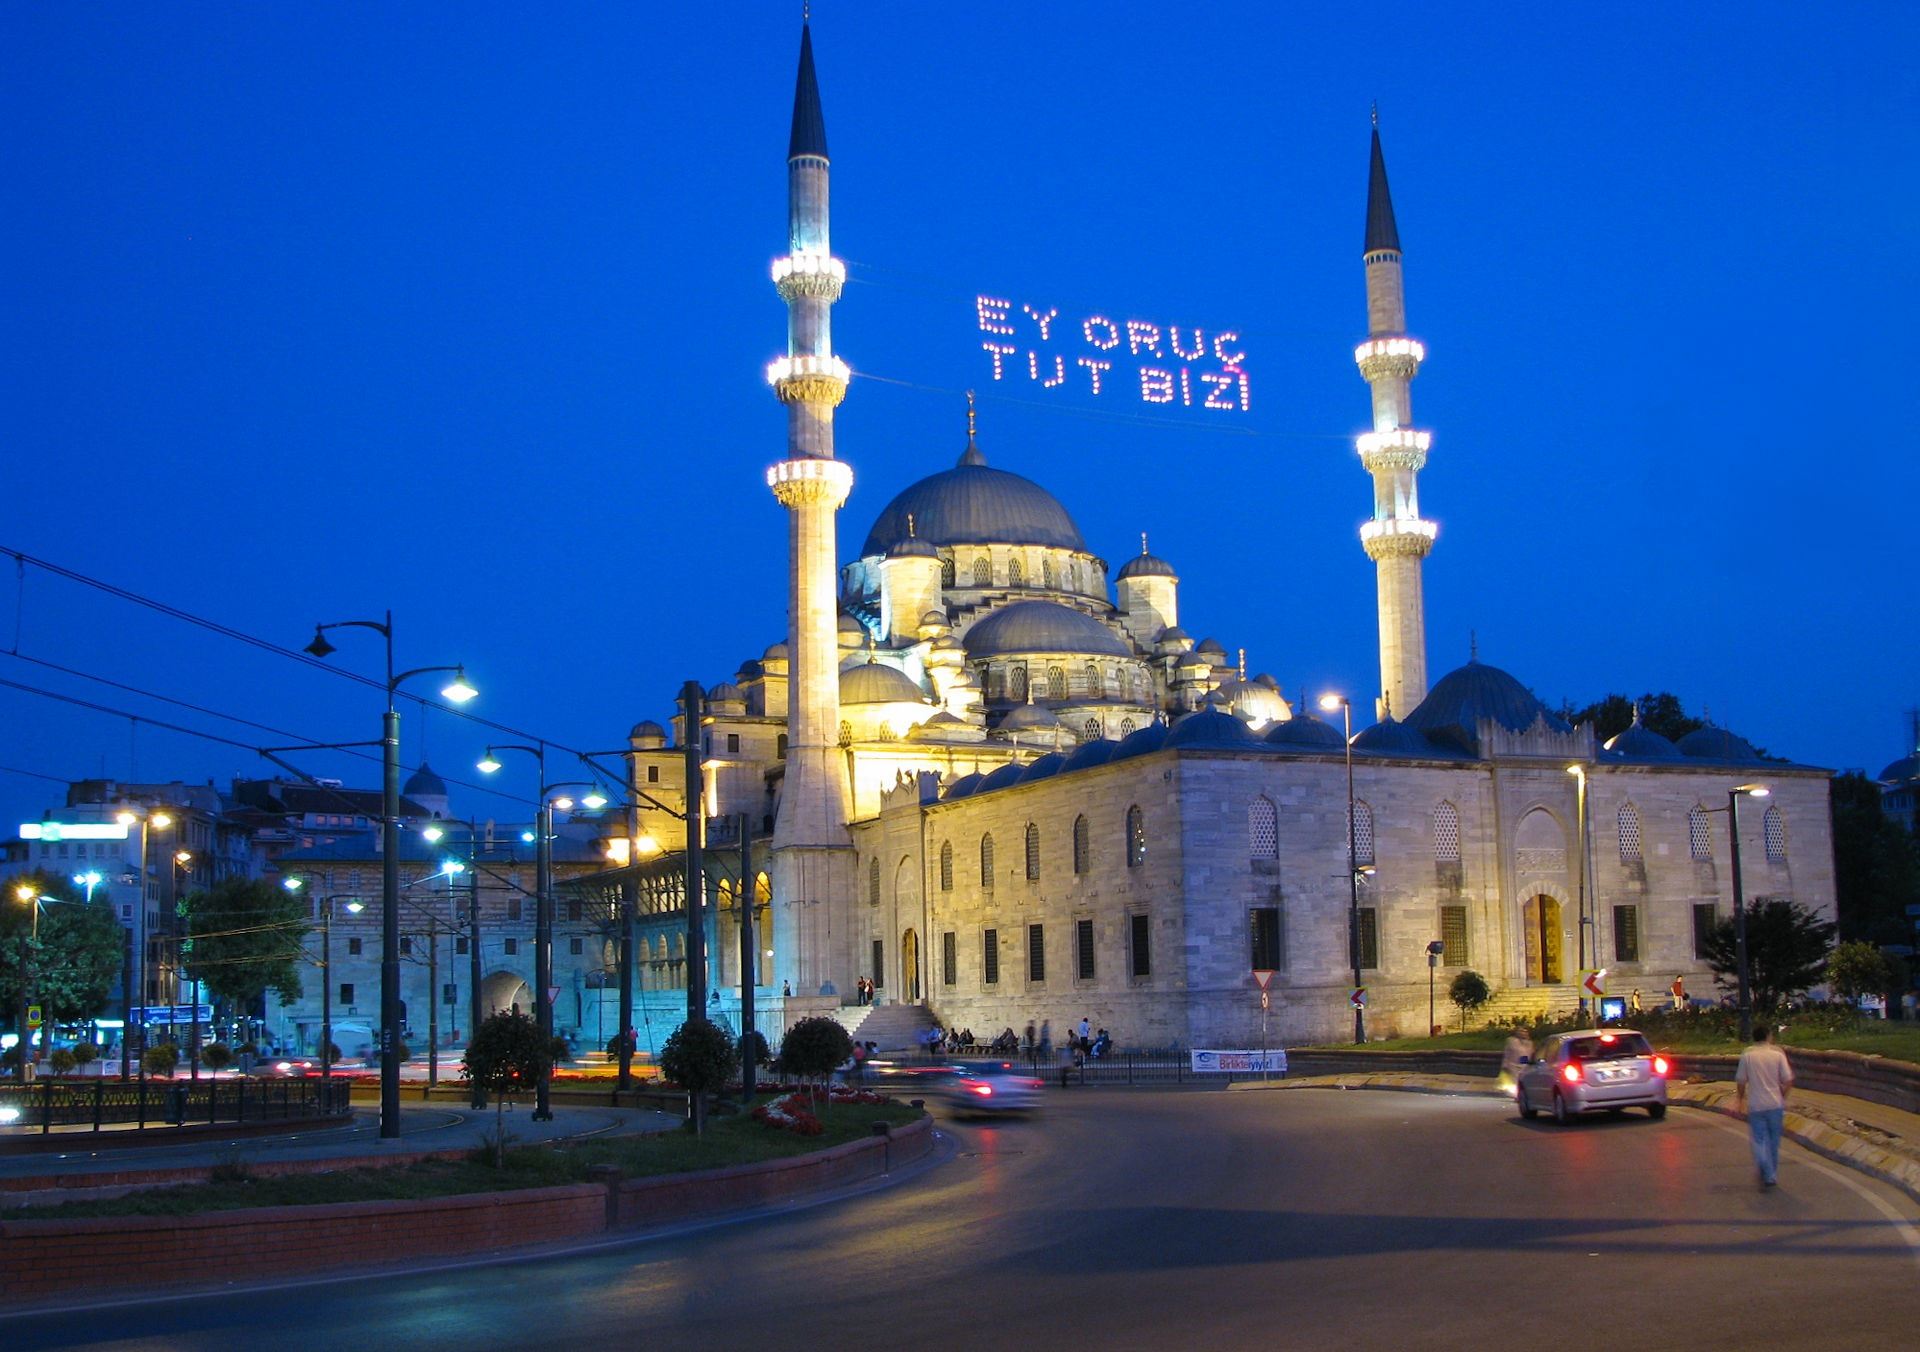 Istanbul New Mosque At Night  by Faruk Koçak